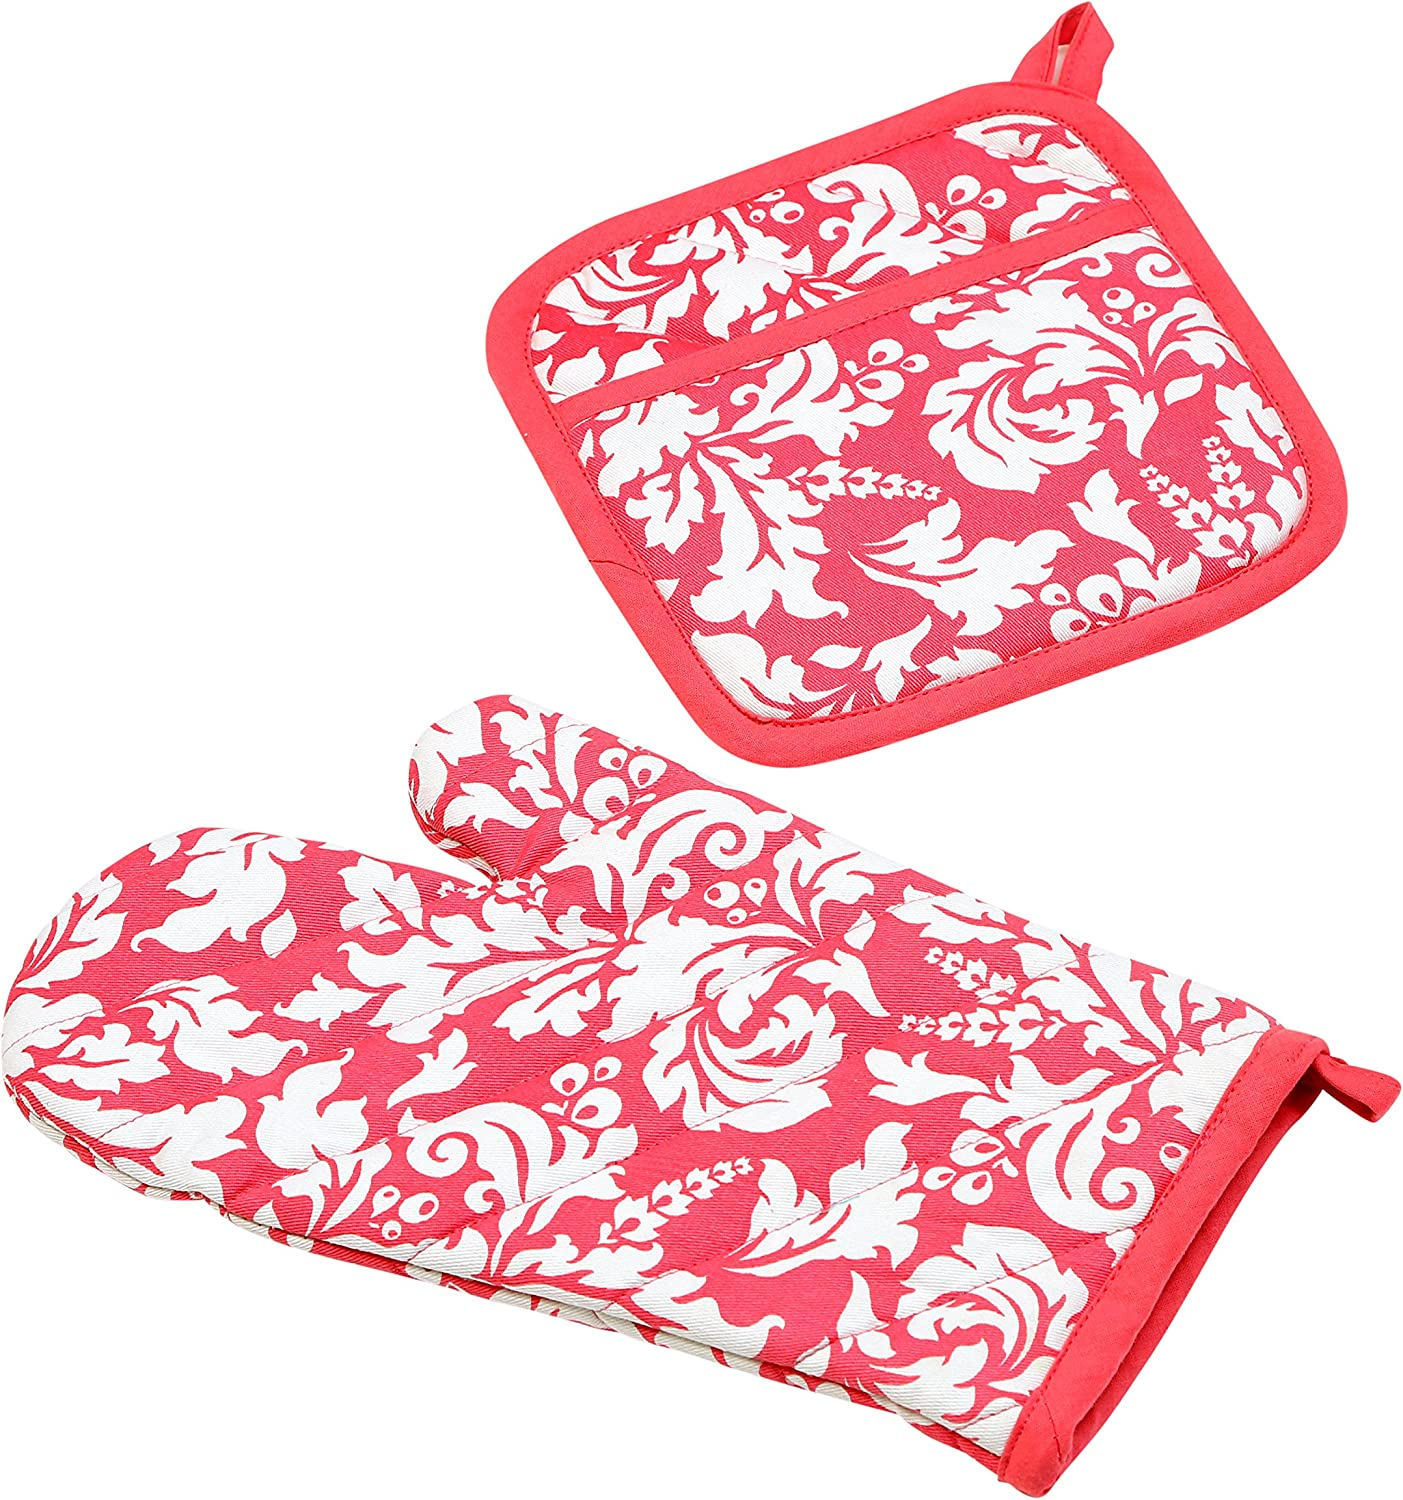 Yourtablecloth Set of Oven Mitt and Pot Holder or Oven Gloves-100% Cotton, High Heat Resistance, Superior Protection & Comfort–Elegant Design-Machine Washable-Pink